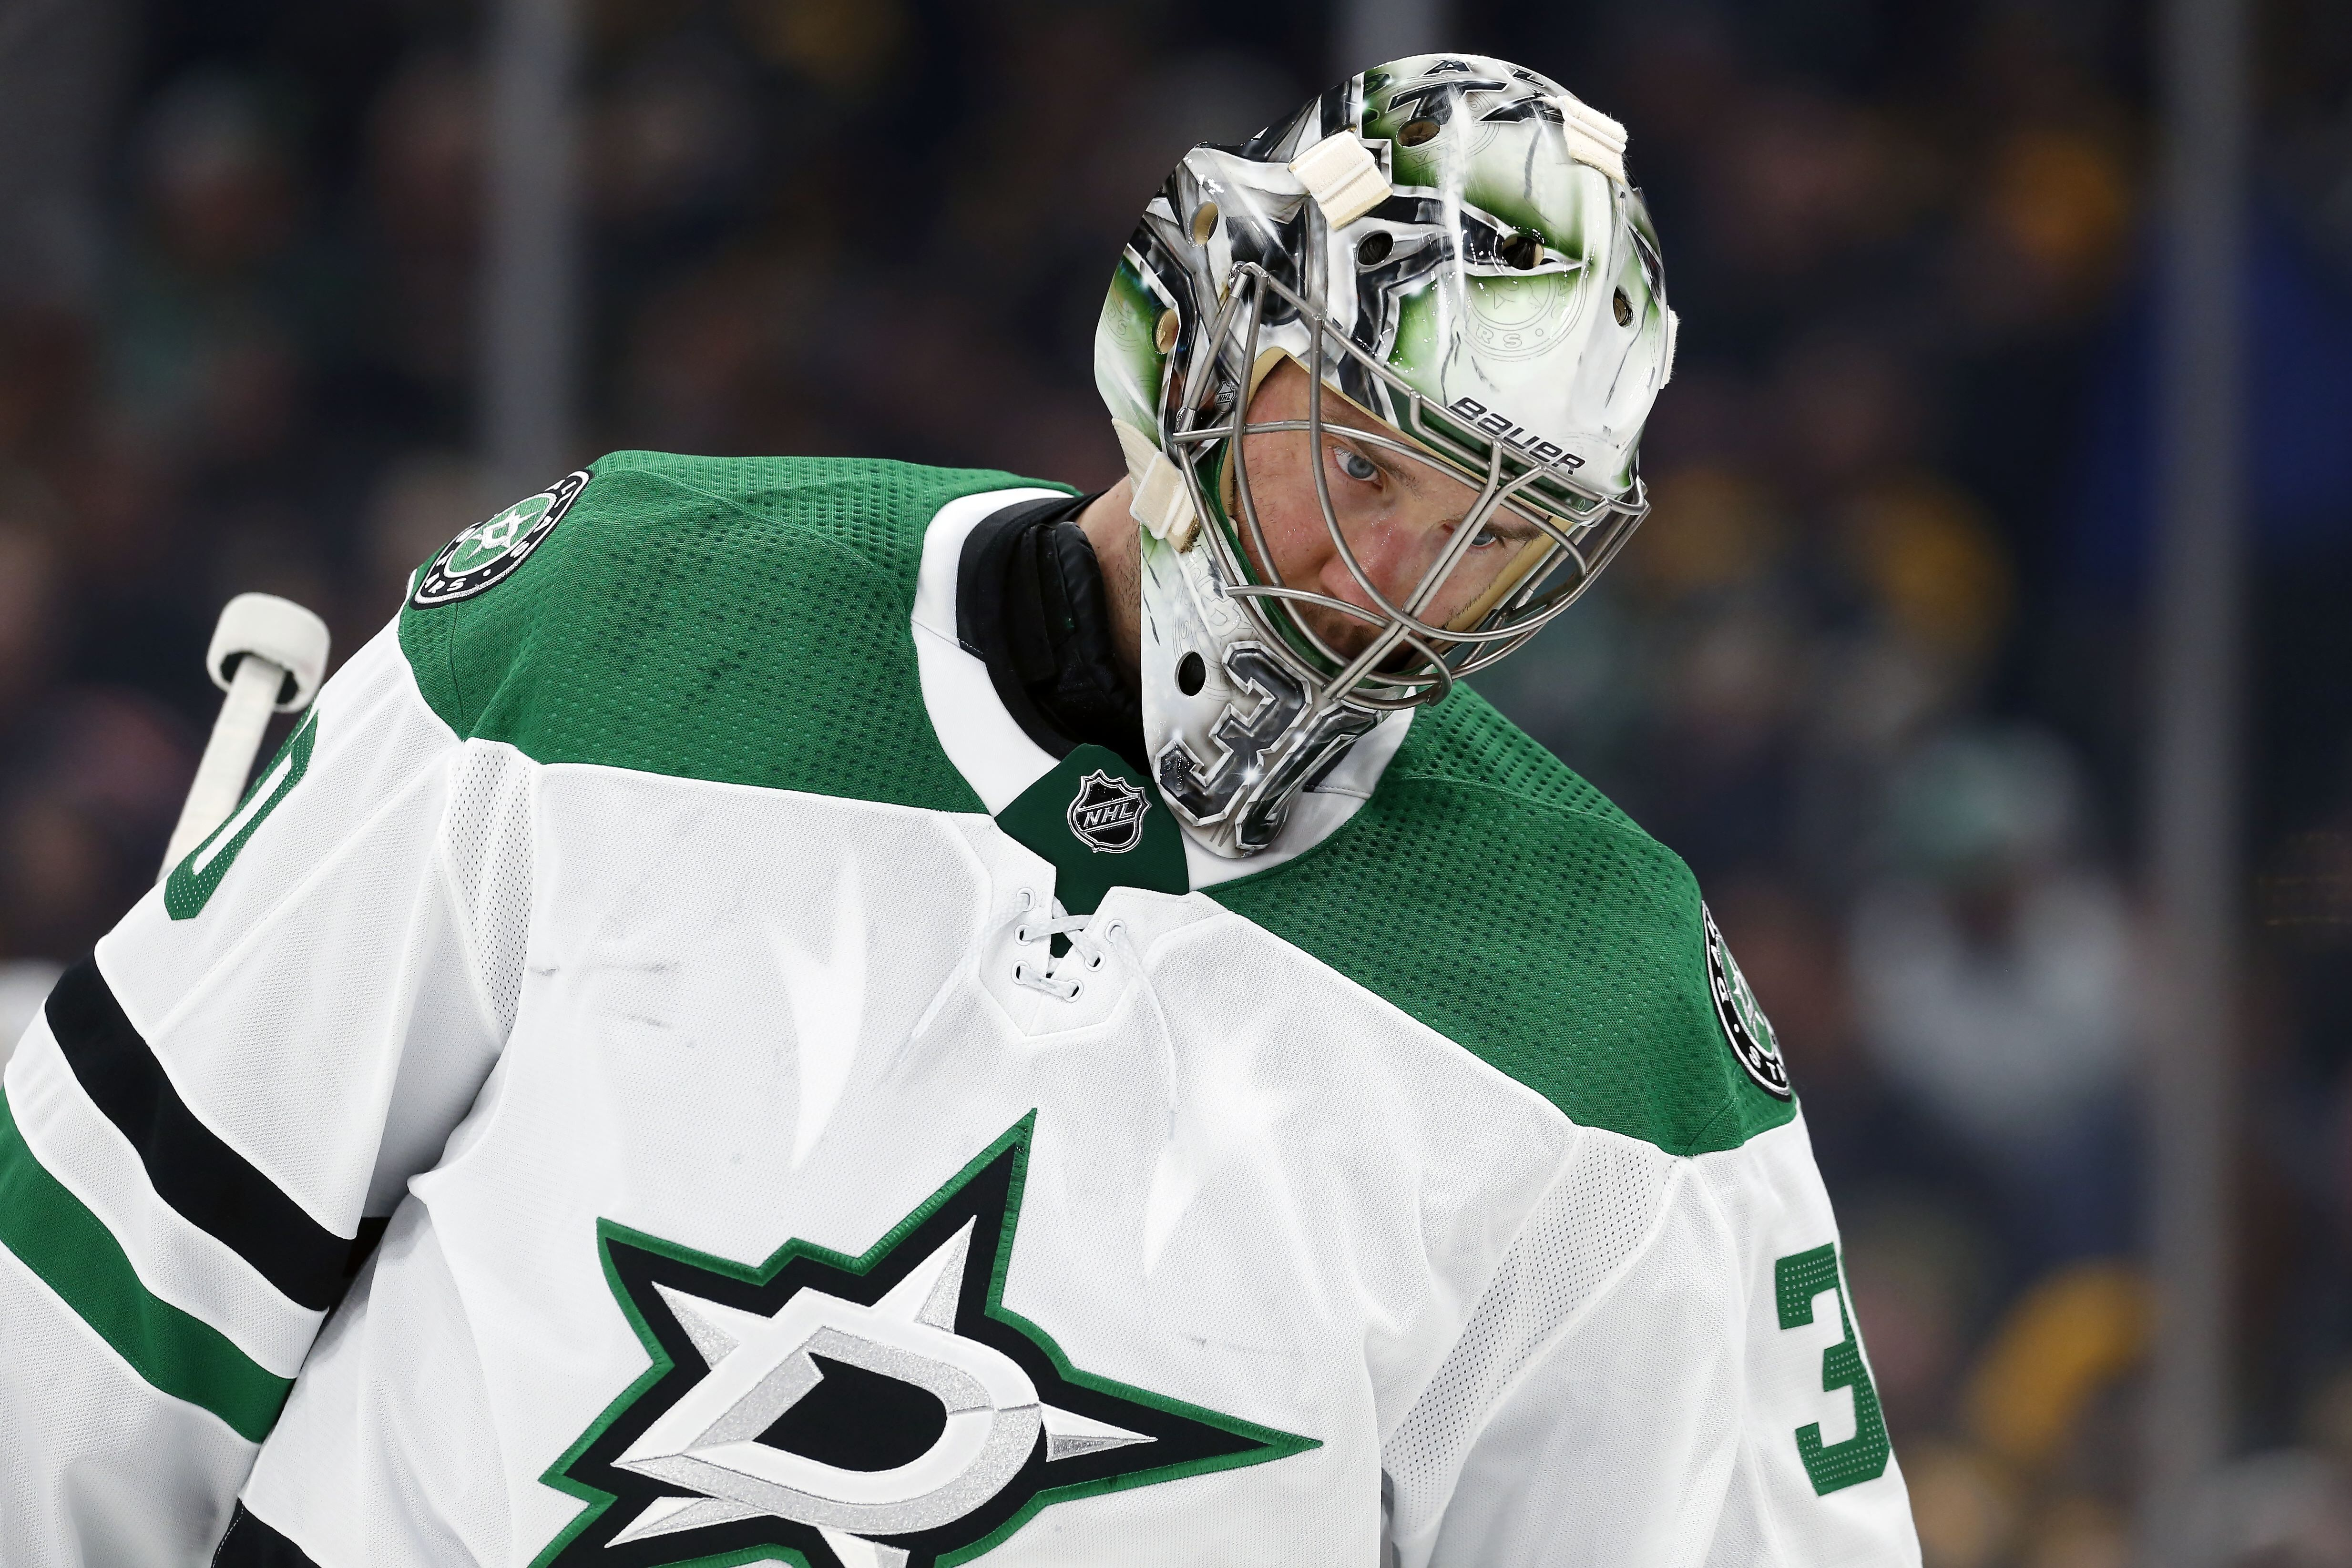 Former Lightning goalie Ben Bishop is on the Stars, but where is he?